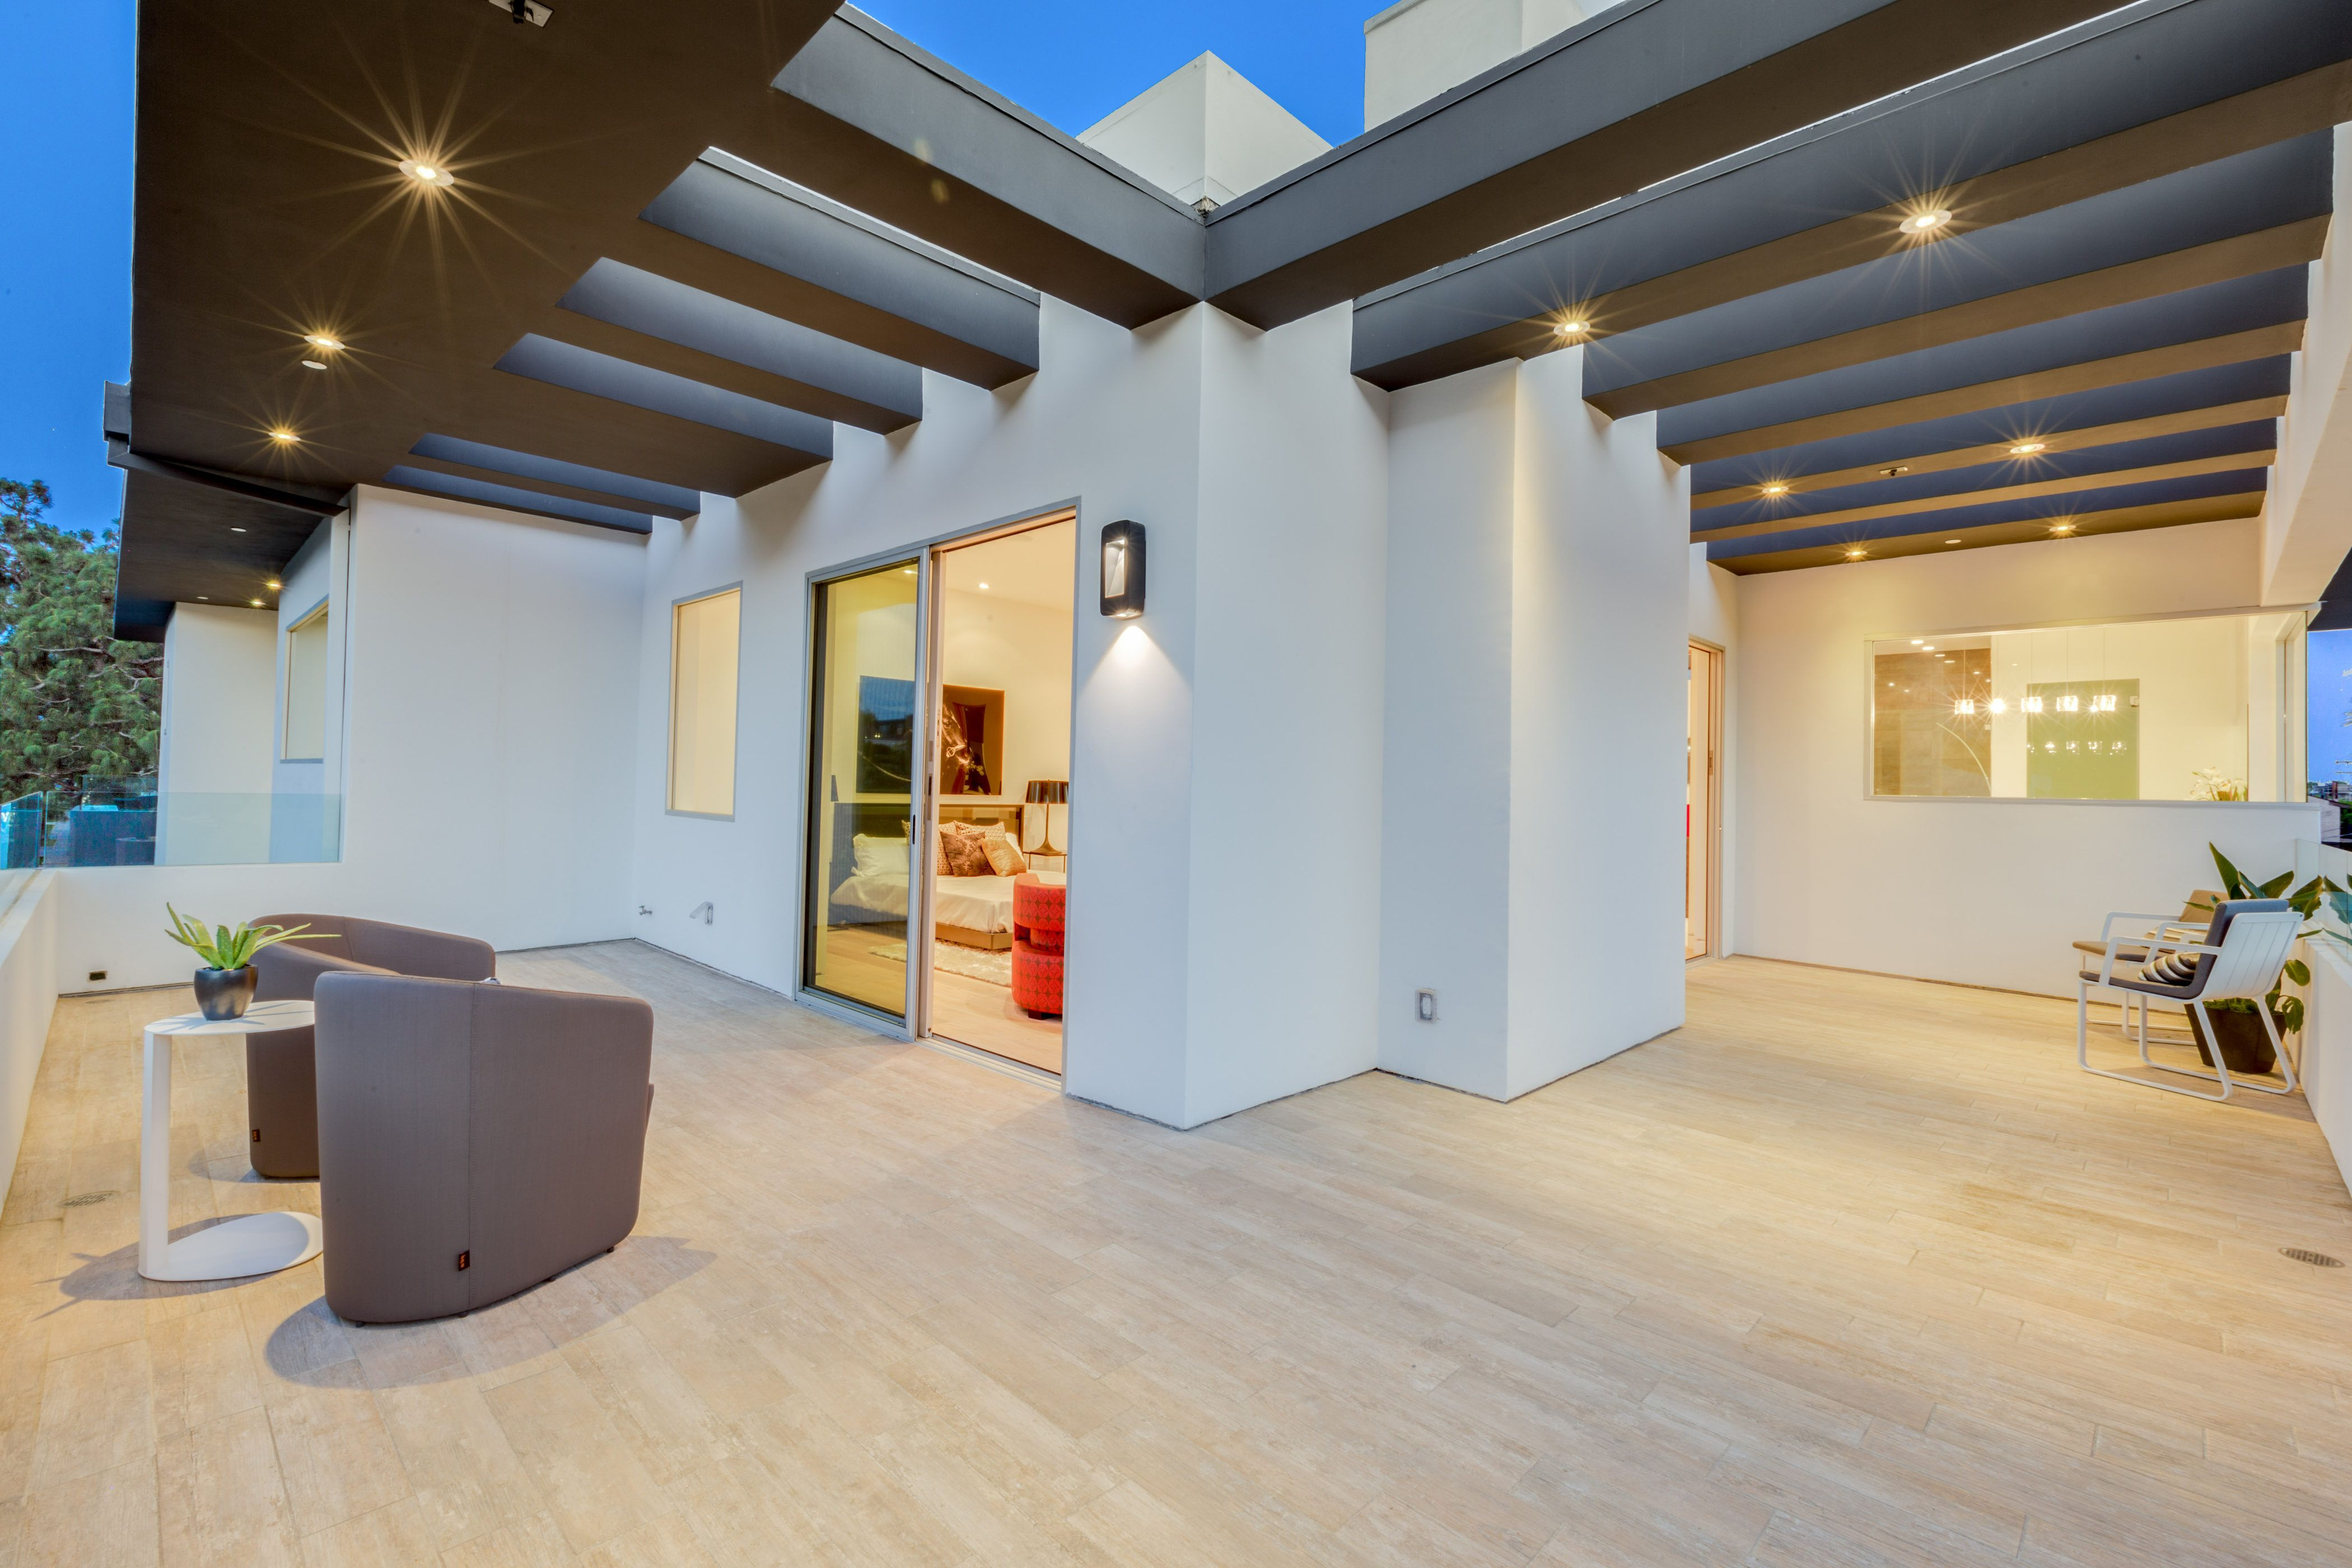 755 N Orlando. SOLD! Beverly Hills | Real Estate | Luxury Real Estate | Engel & Voelkers | International Real Estate | Rodeo Drive | Beverly Hills flats